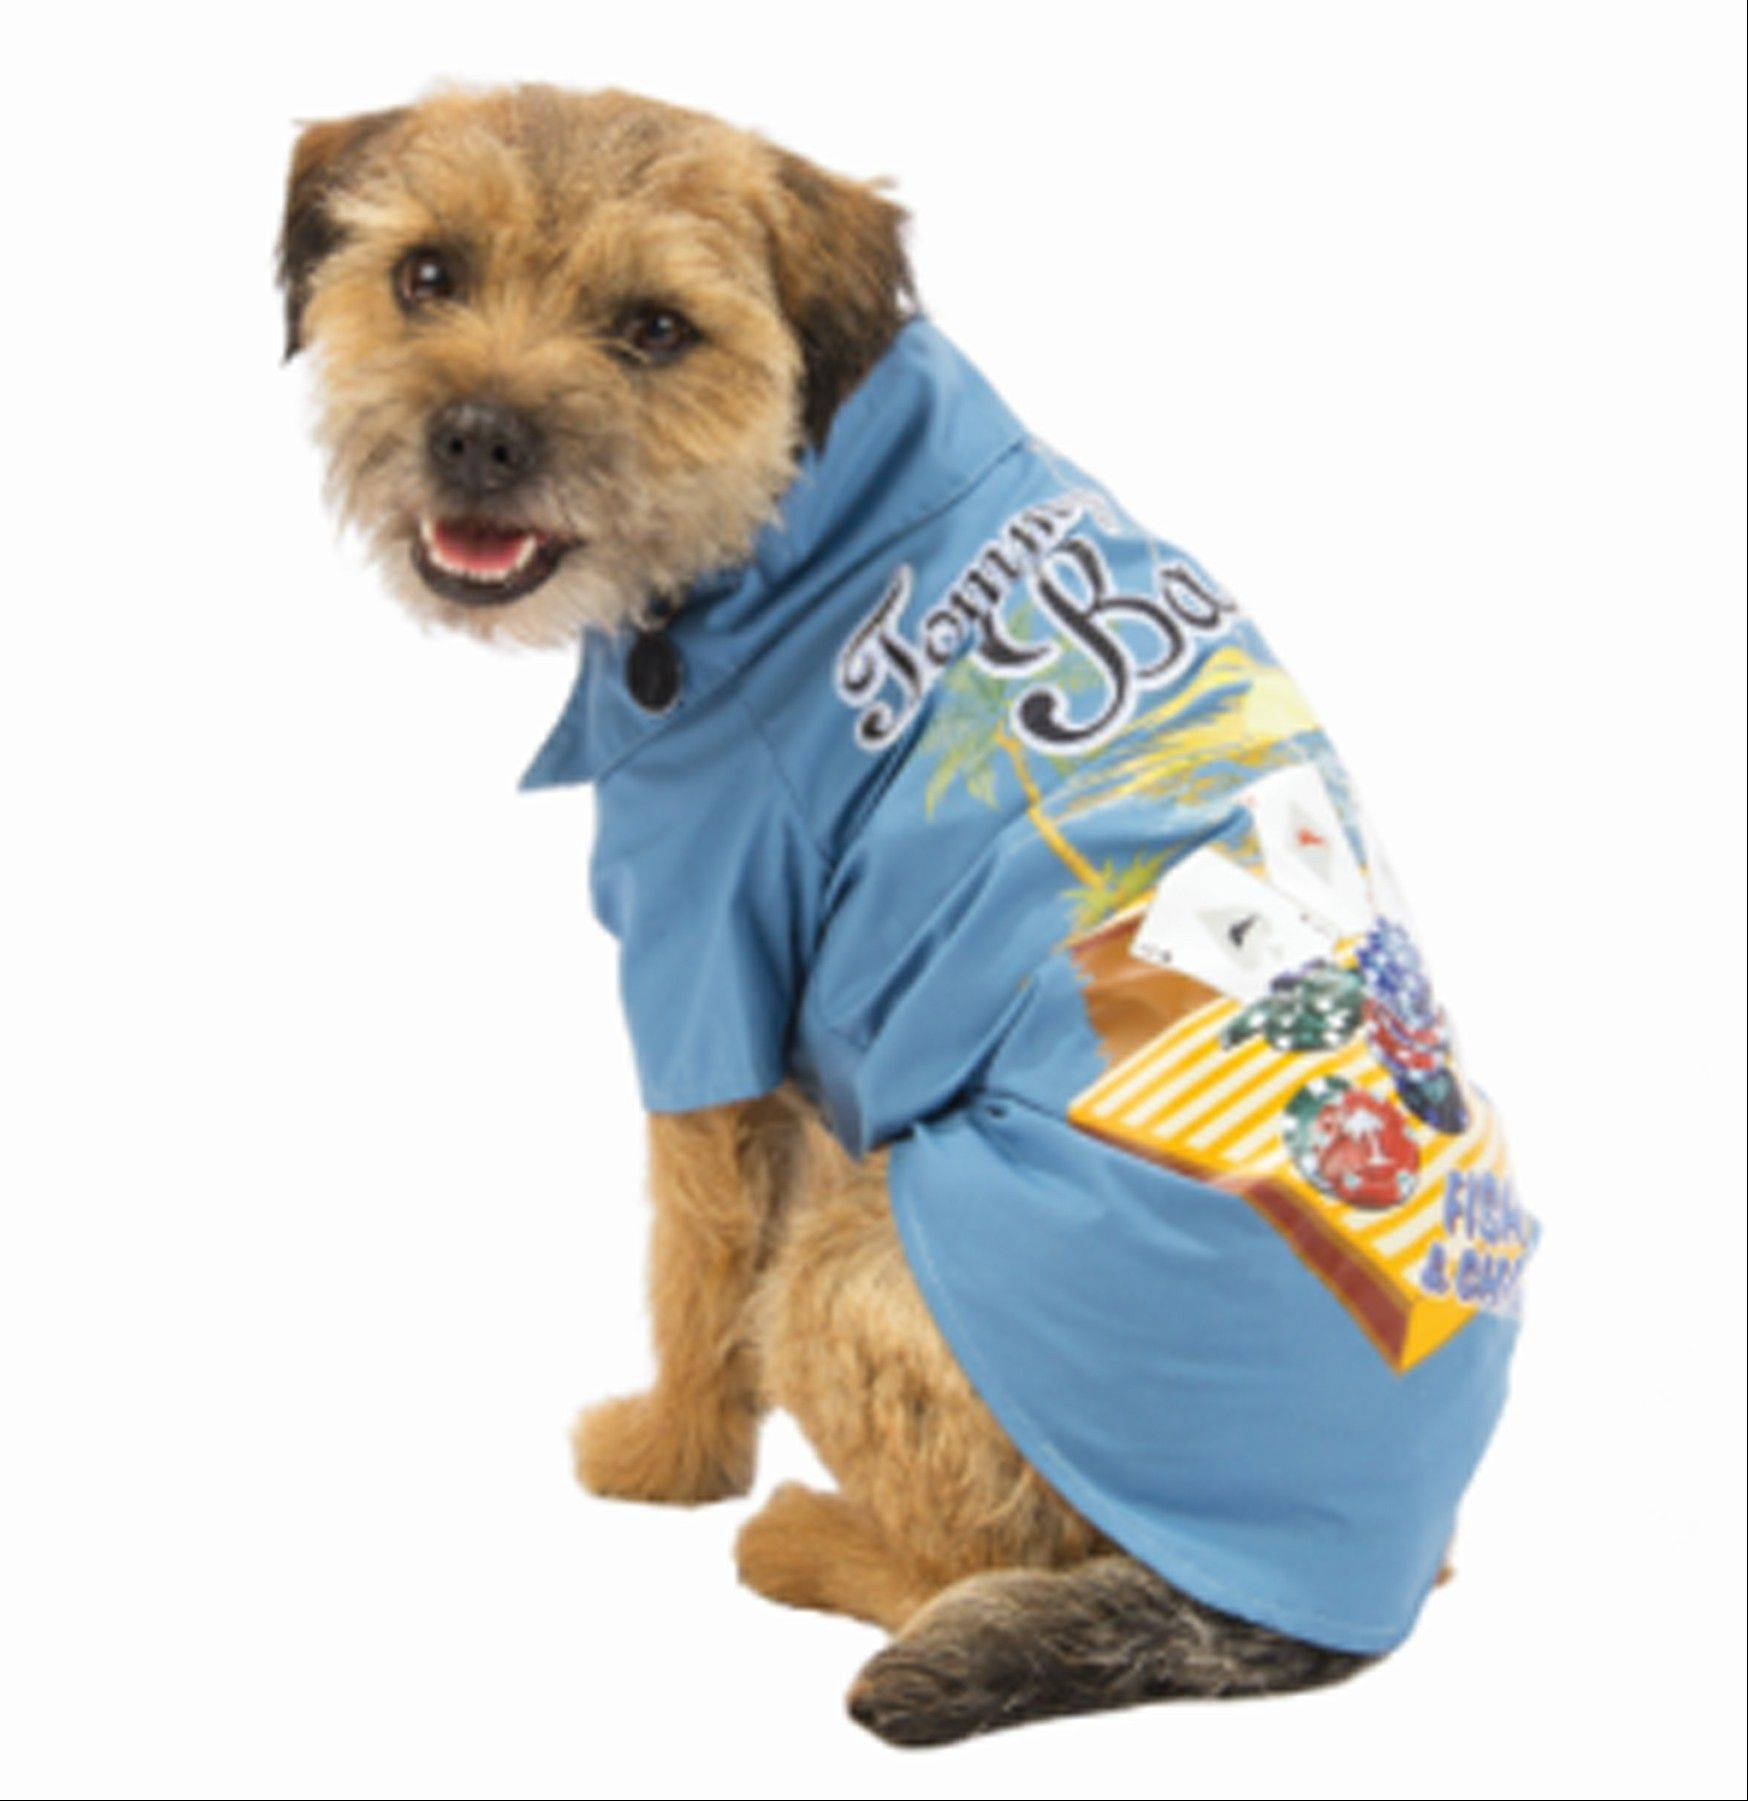 Tommy Bahama Pets will be in PetSmart Inc. stores through August. There's a designer shirt and a dress with a ruffled skirt made with Bahama's traditional hibiscus fabric. There are other shirts with palm trees and fish and chips, an Aloha Tee, hats and toys in the shape of thongs.